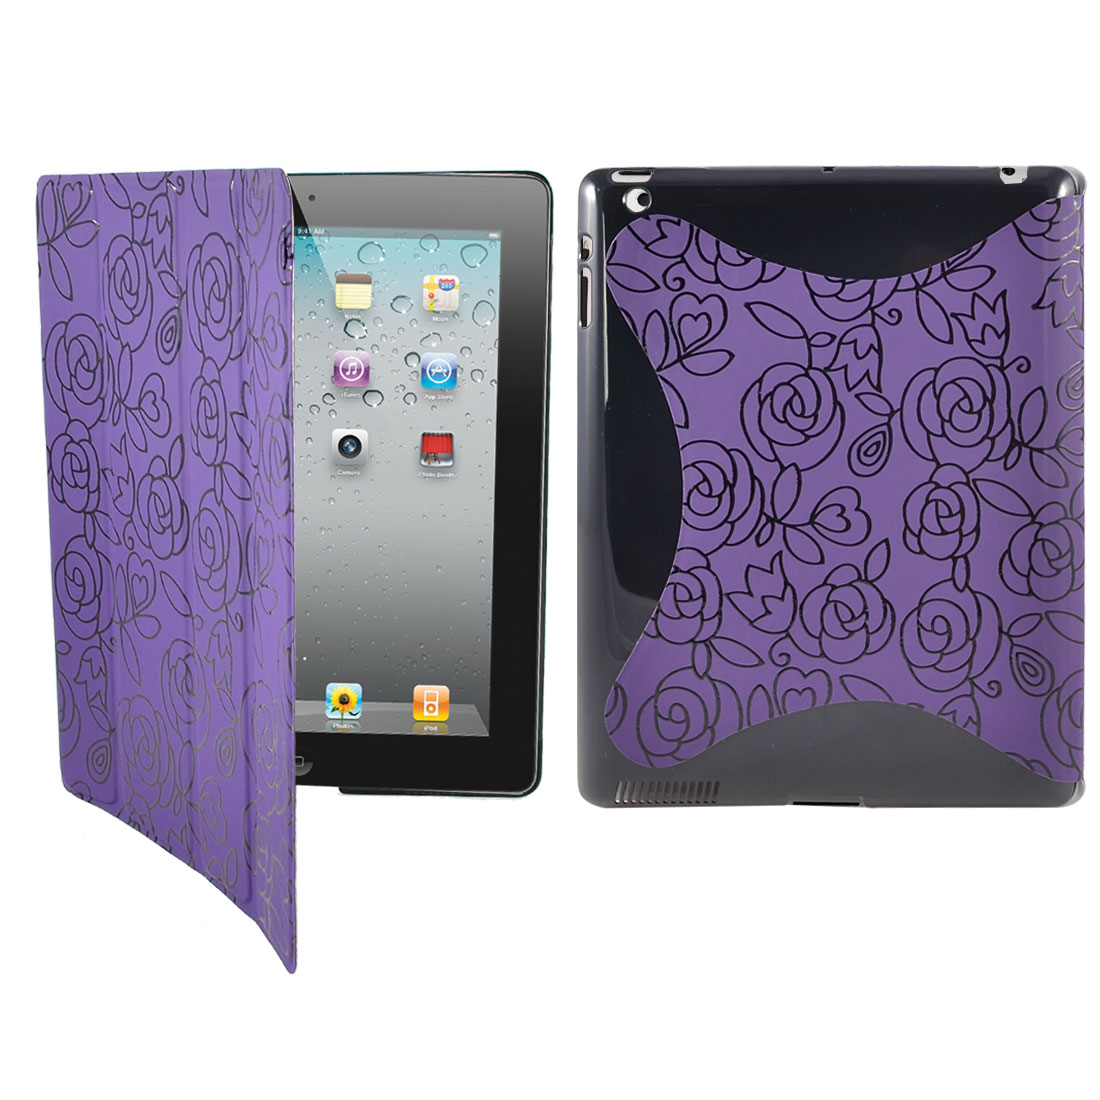 Black Rose Flower Purple PU Leather Wake Up Sleep Case Smart Cover for iPad 2 3 4